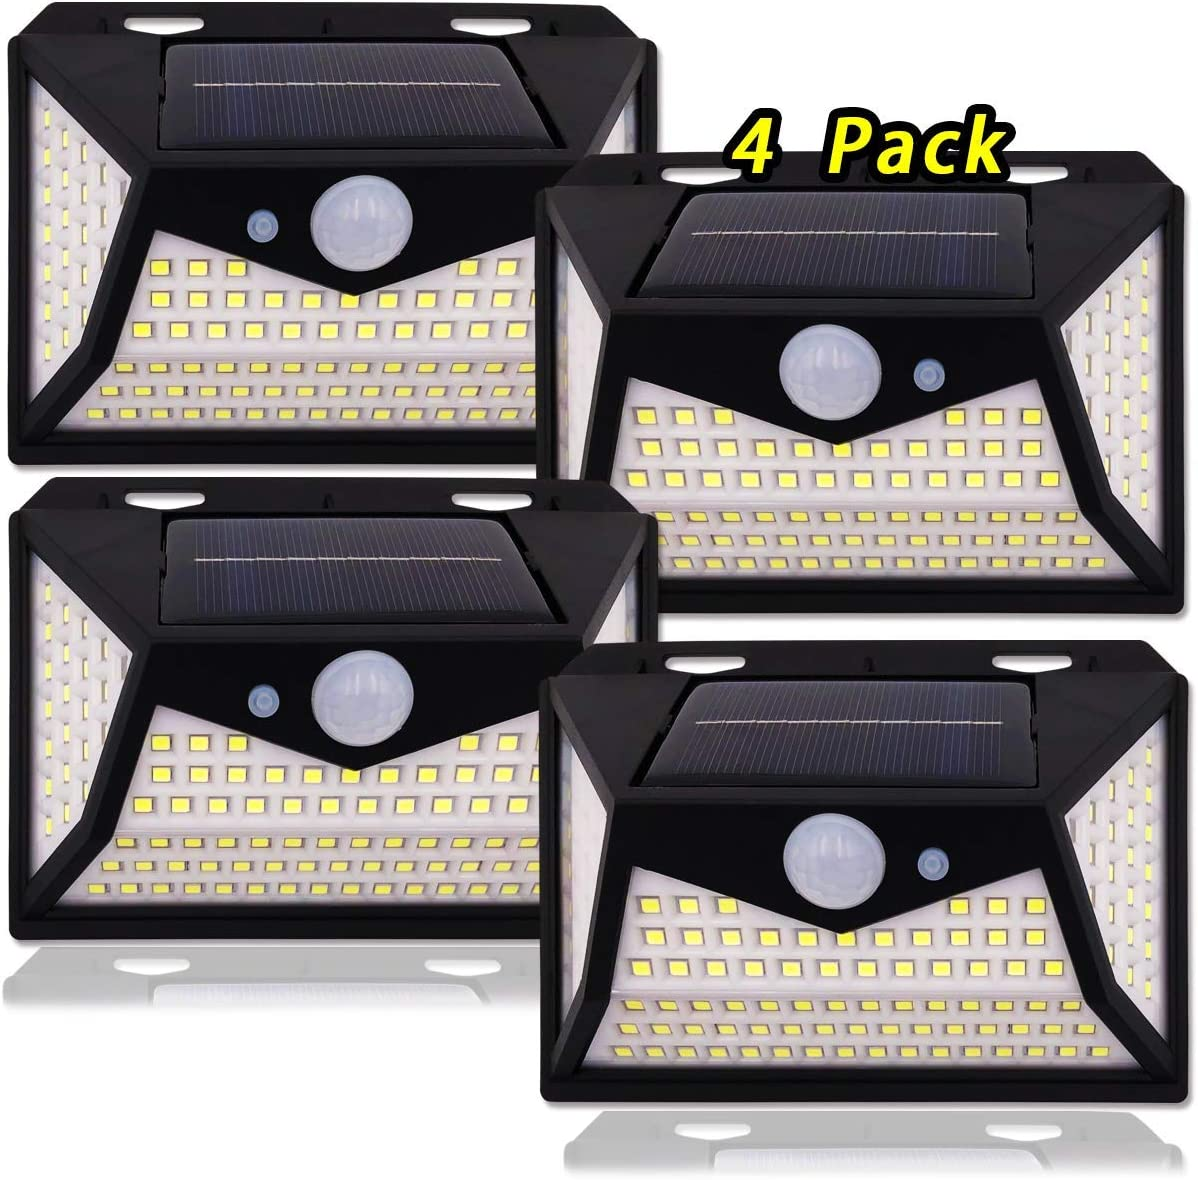 Solar Wall Light,Solar Lights Outdoor,118 LEDs,4 Pack,Motion Sensor with 3 Lighting Modes IP65 Waterproof Led,for Outdoor Party, Garden, Patio, Garage, Back/Front Door,Porch